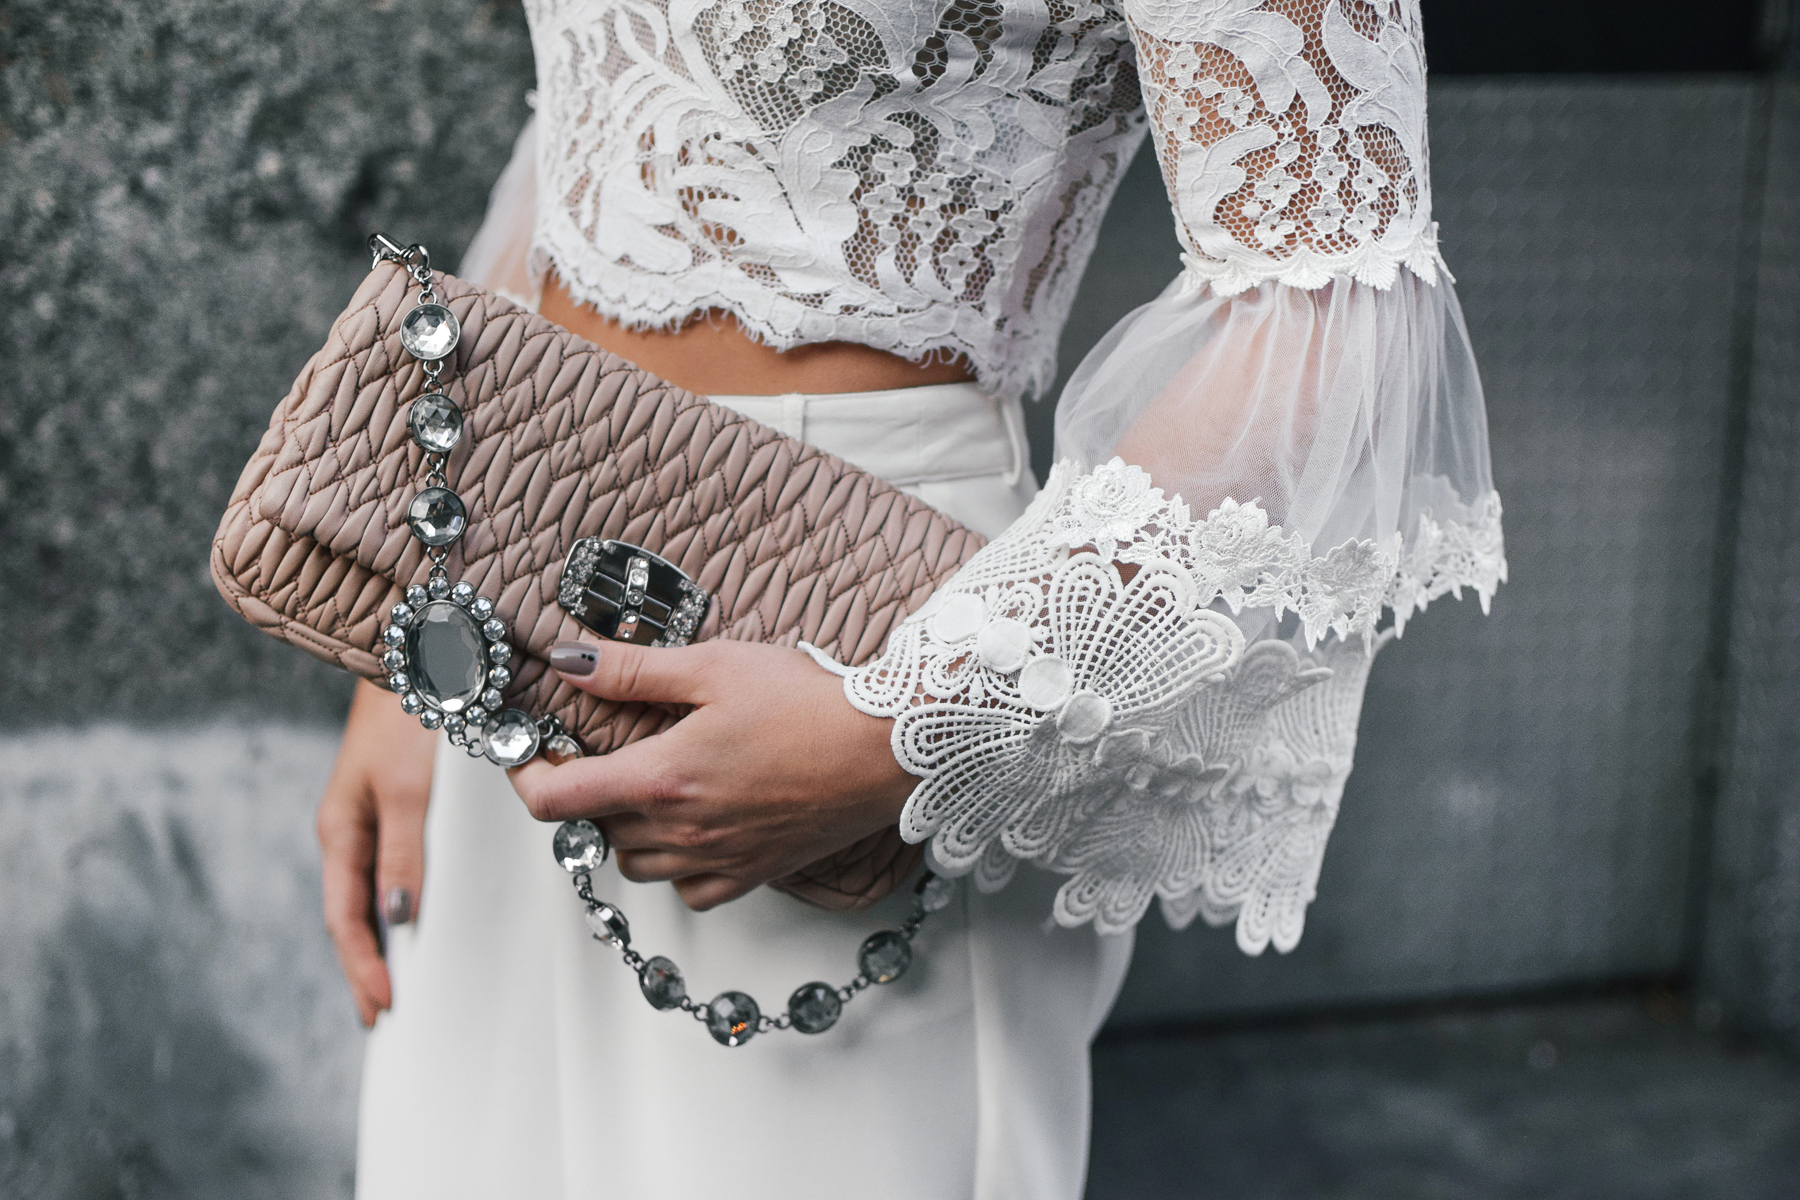 ruffle-lace-sheer-blouse-detail-miu-miu-blush-crystal-bag-nyfw-streetstyle